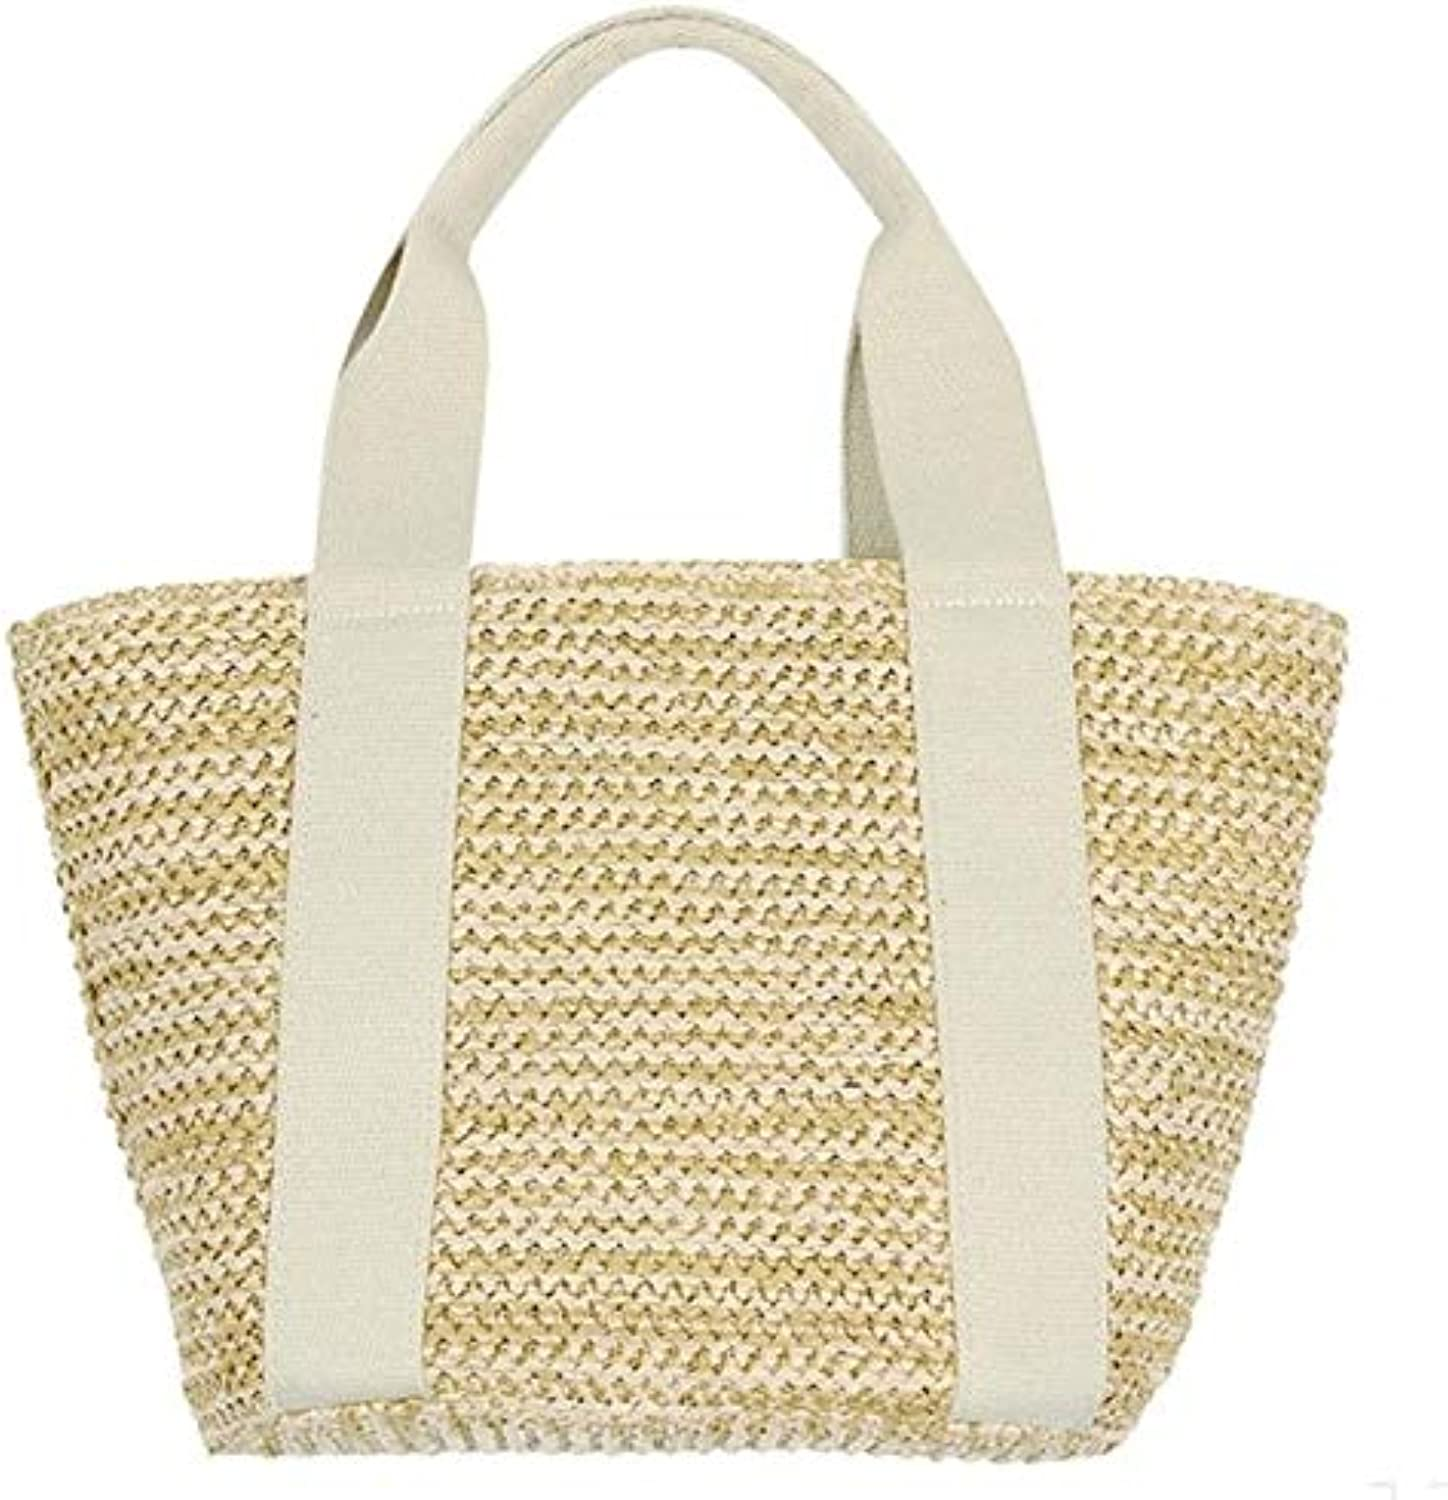 Handmade Kintted Bohemian Straw Bags Women Big Circle Beach Handbags Summer Vintage Rattan Travel Bag